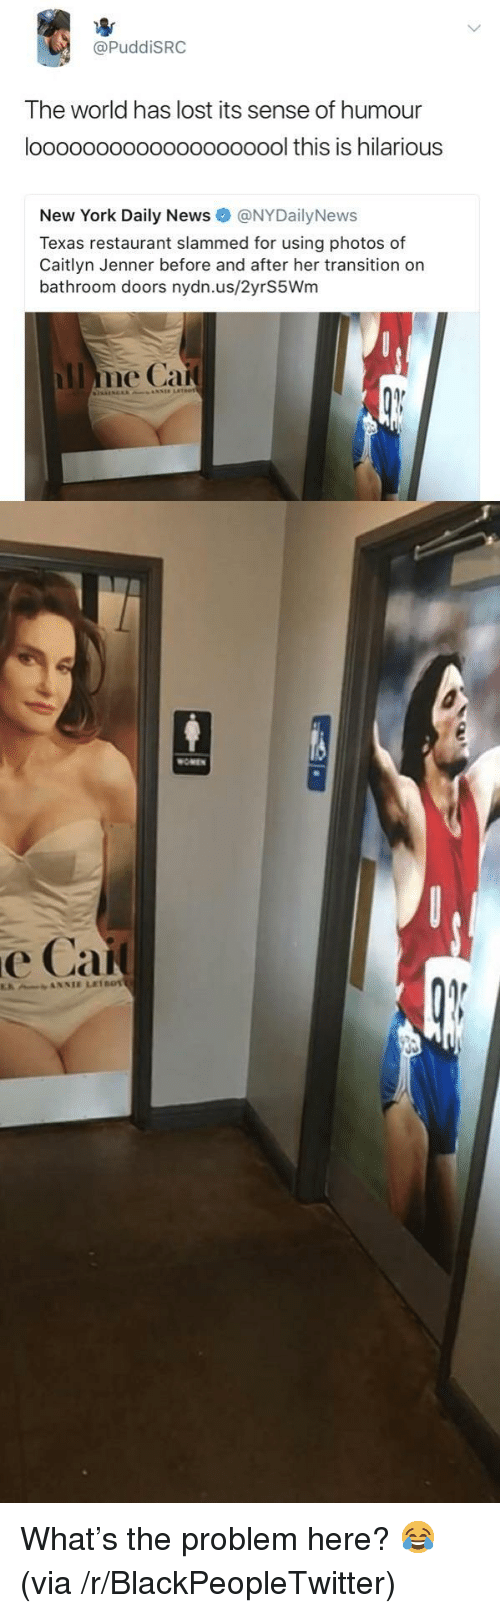 Caitlyn Jenner: @PuddiSRC  The world has lost its sense of humour  loooooooooooooooooool this is hilarious  New York Daily News @NYDailyNews  Texas restaurant slammed for using photos of  Caitlyn Jenner before and after her transition on  bathroom doors nydn.us/2yrS5Wm  OMEN  е Сай <p>What&rsquo;s the problem here? 😂 (via /r/BlackPeopleTwitter)</p>